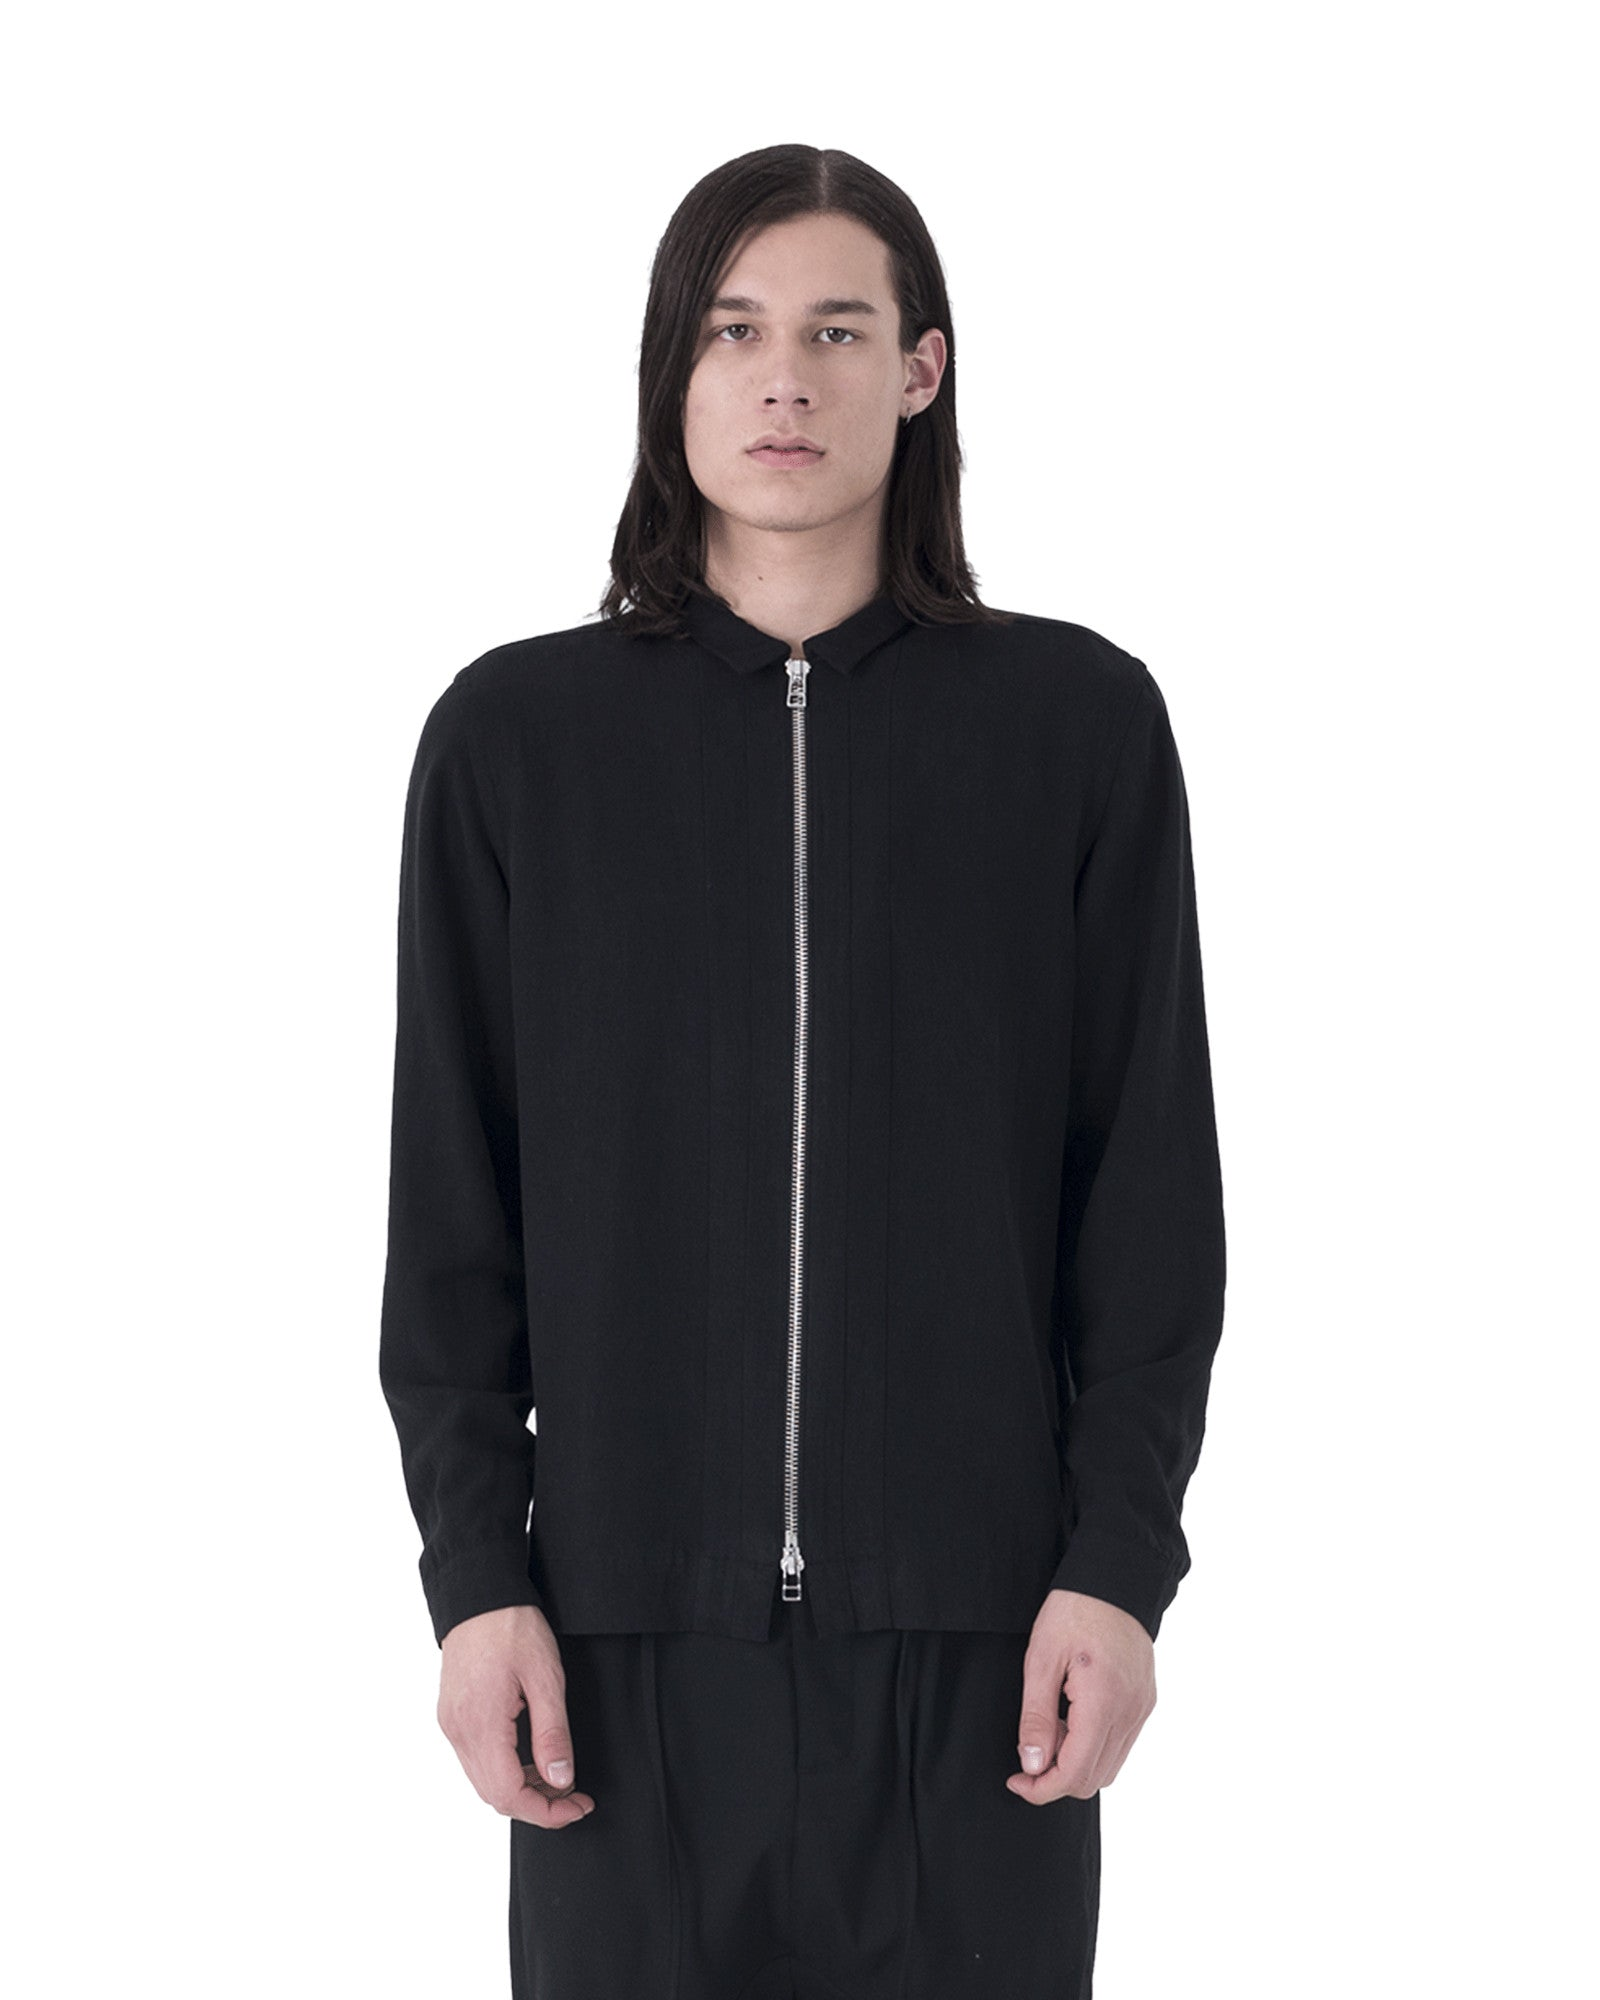 Derb Shirt Jacket - OD Black